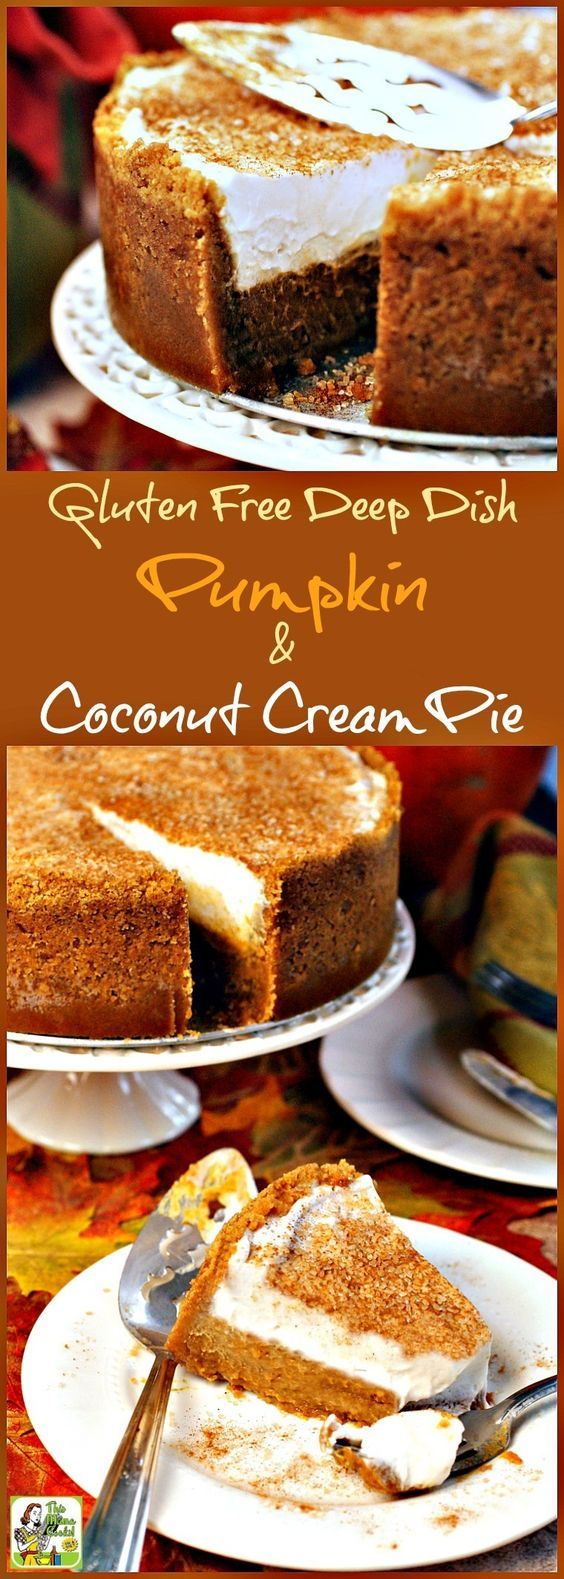 Sub eggs for flax/chia eggs.   Not only is this pumpkin dessert recipe gluten free and dairy free, but it's easy to make and transport to a potluck party, too! Click here to get the recipe for Gluten Free Deep Dish Pumpkin & Coconut Cream Pie.: